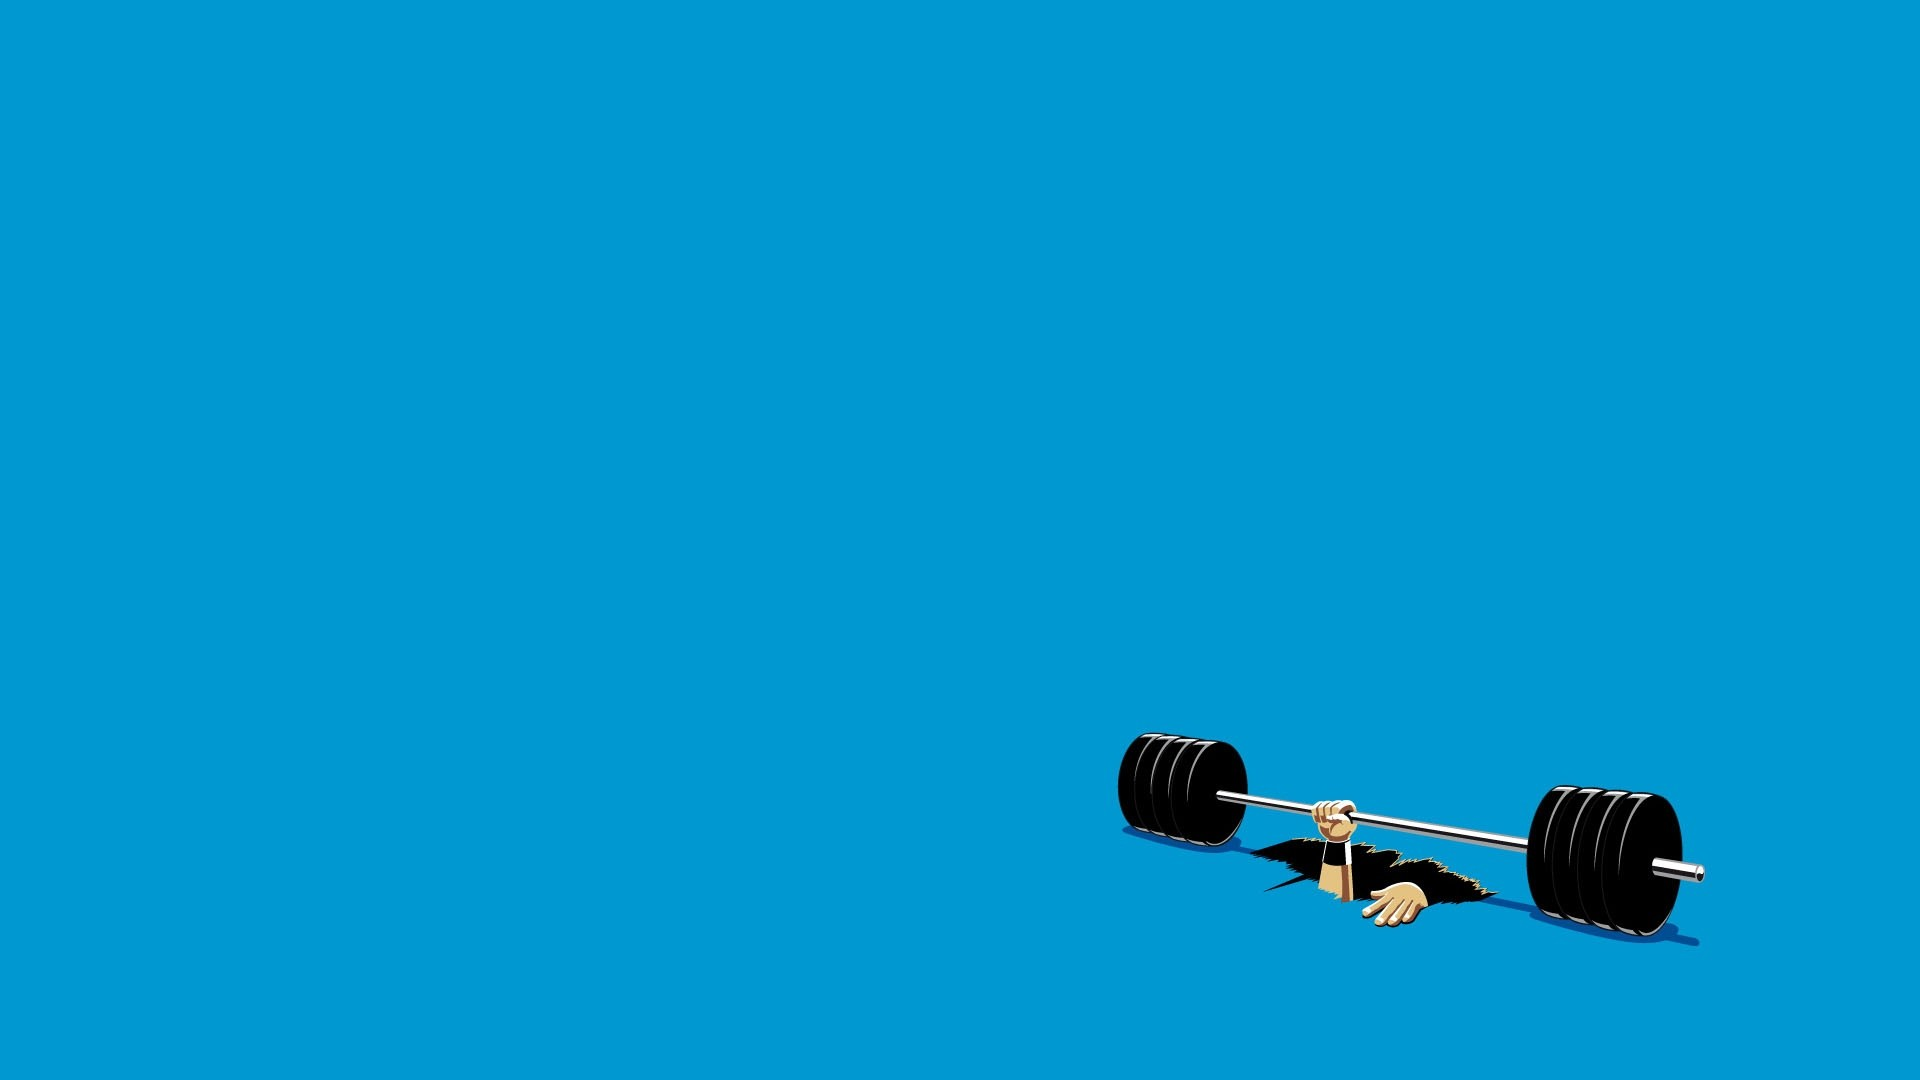 weight lifting wallpaper hd (63+ images)